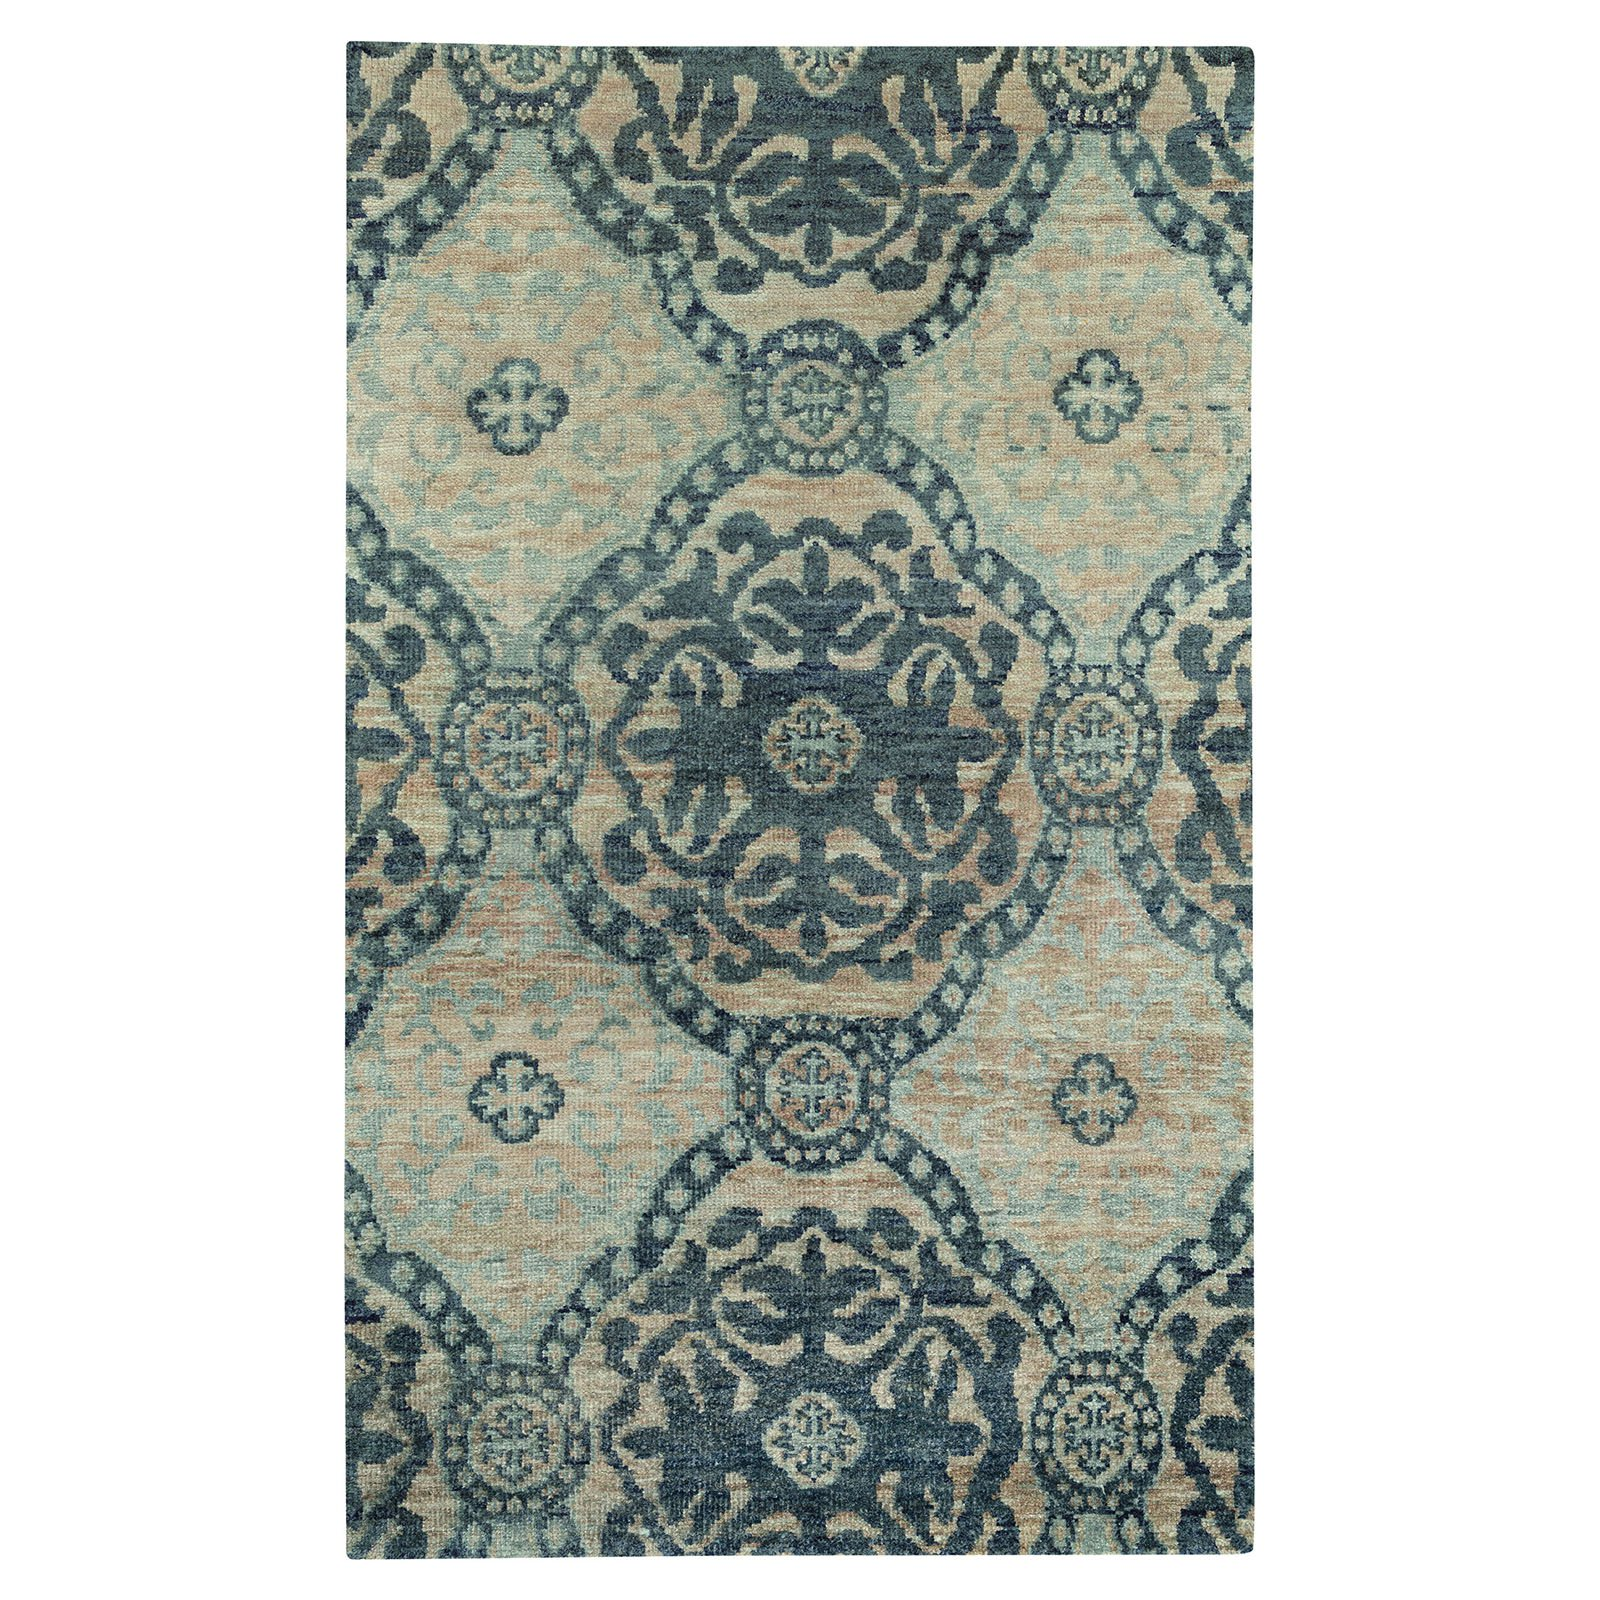 Round About Ring Leader Hand-Knotted Area Rug